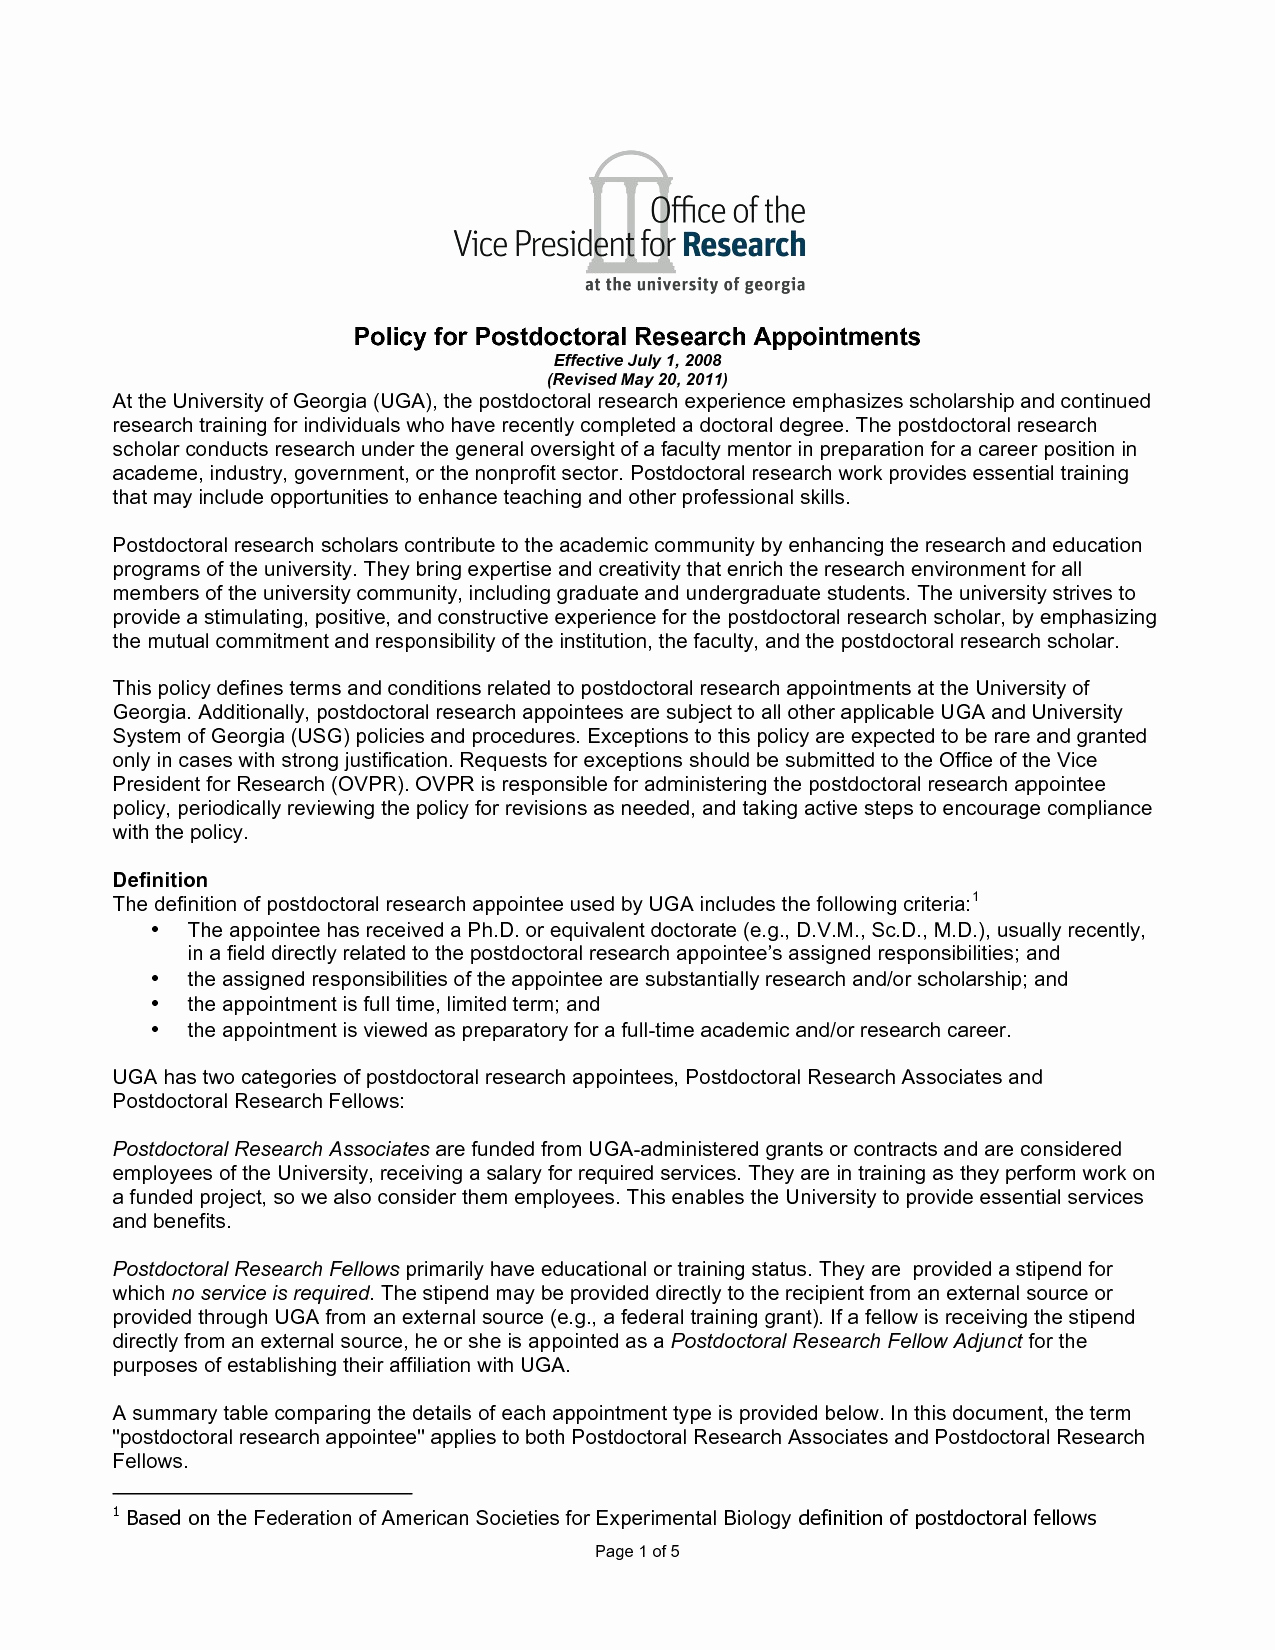 Postdoc Cover Letter Template - Postdoc Cover Letter Template Awesome Cover Letter for Faculty